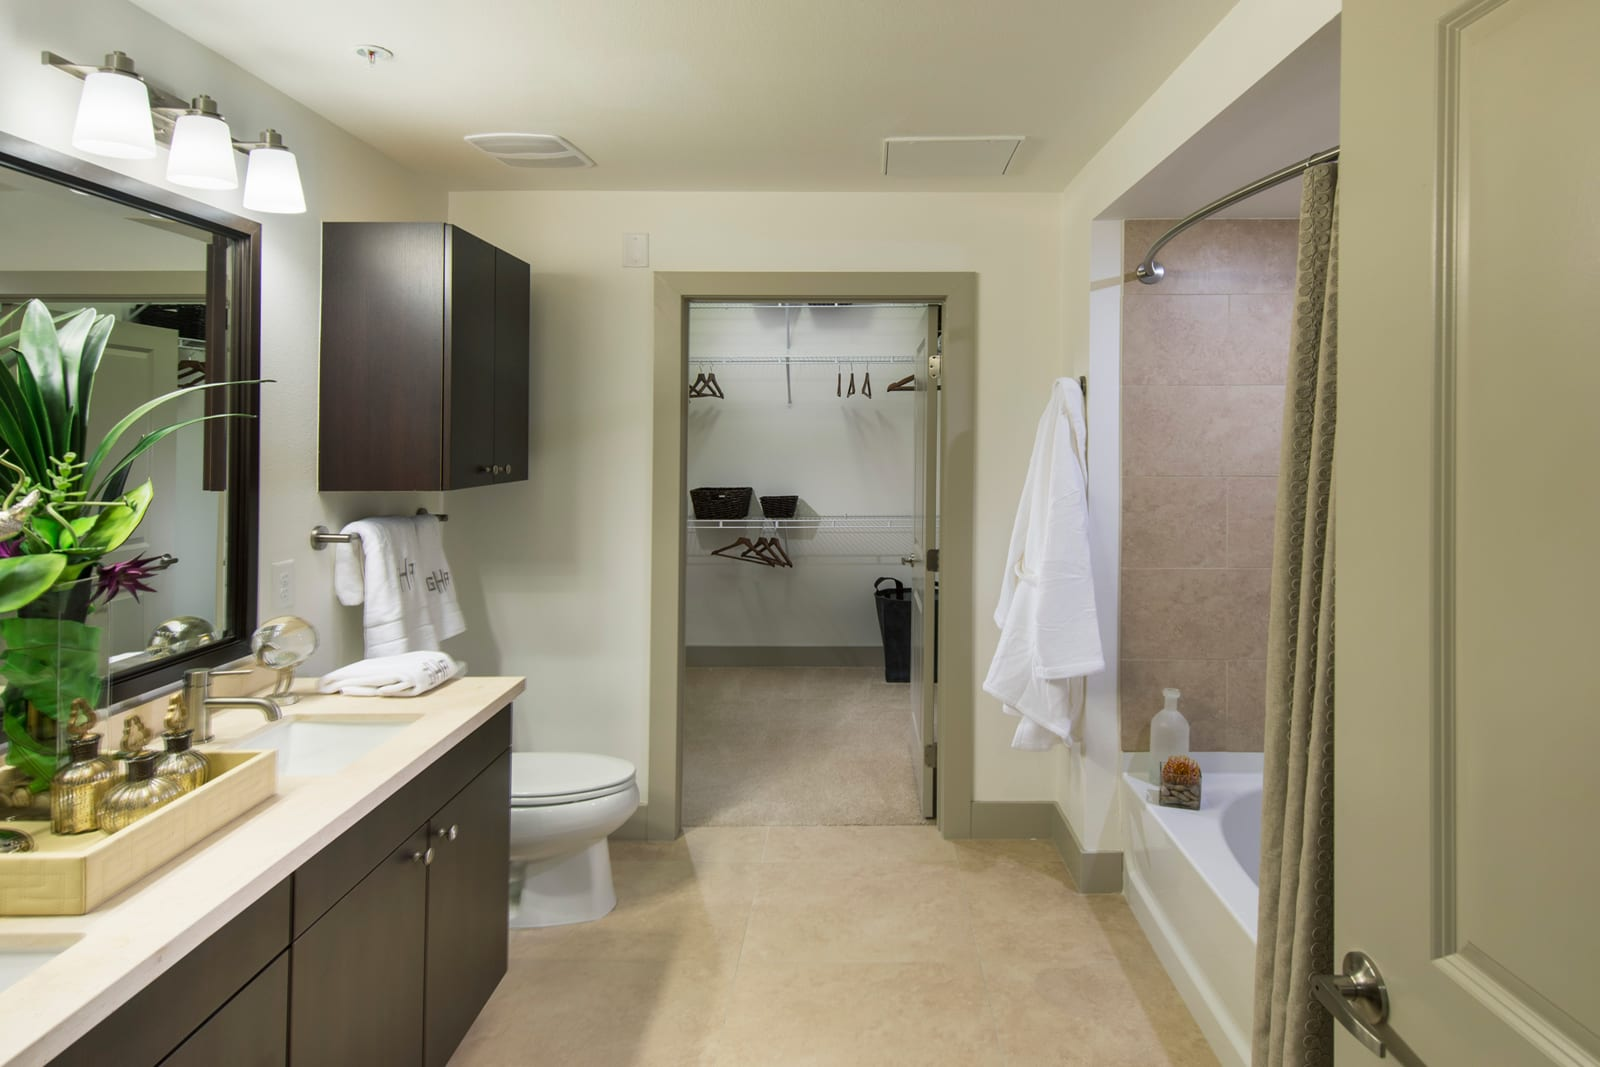 Abundant Storage Including Walk-In Closets at 1000 Grand by Windsor, California, 90015